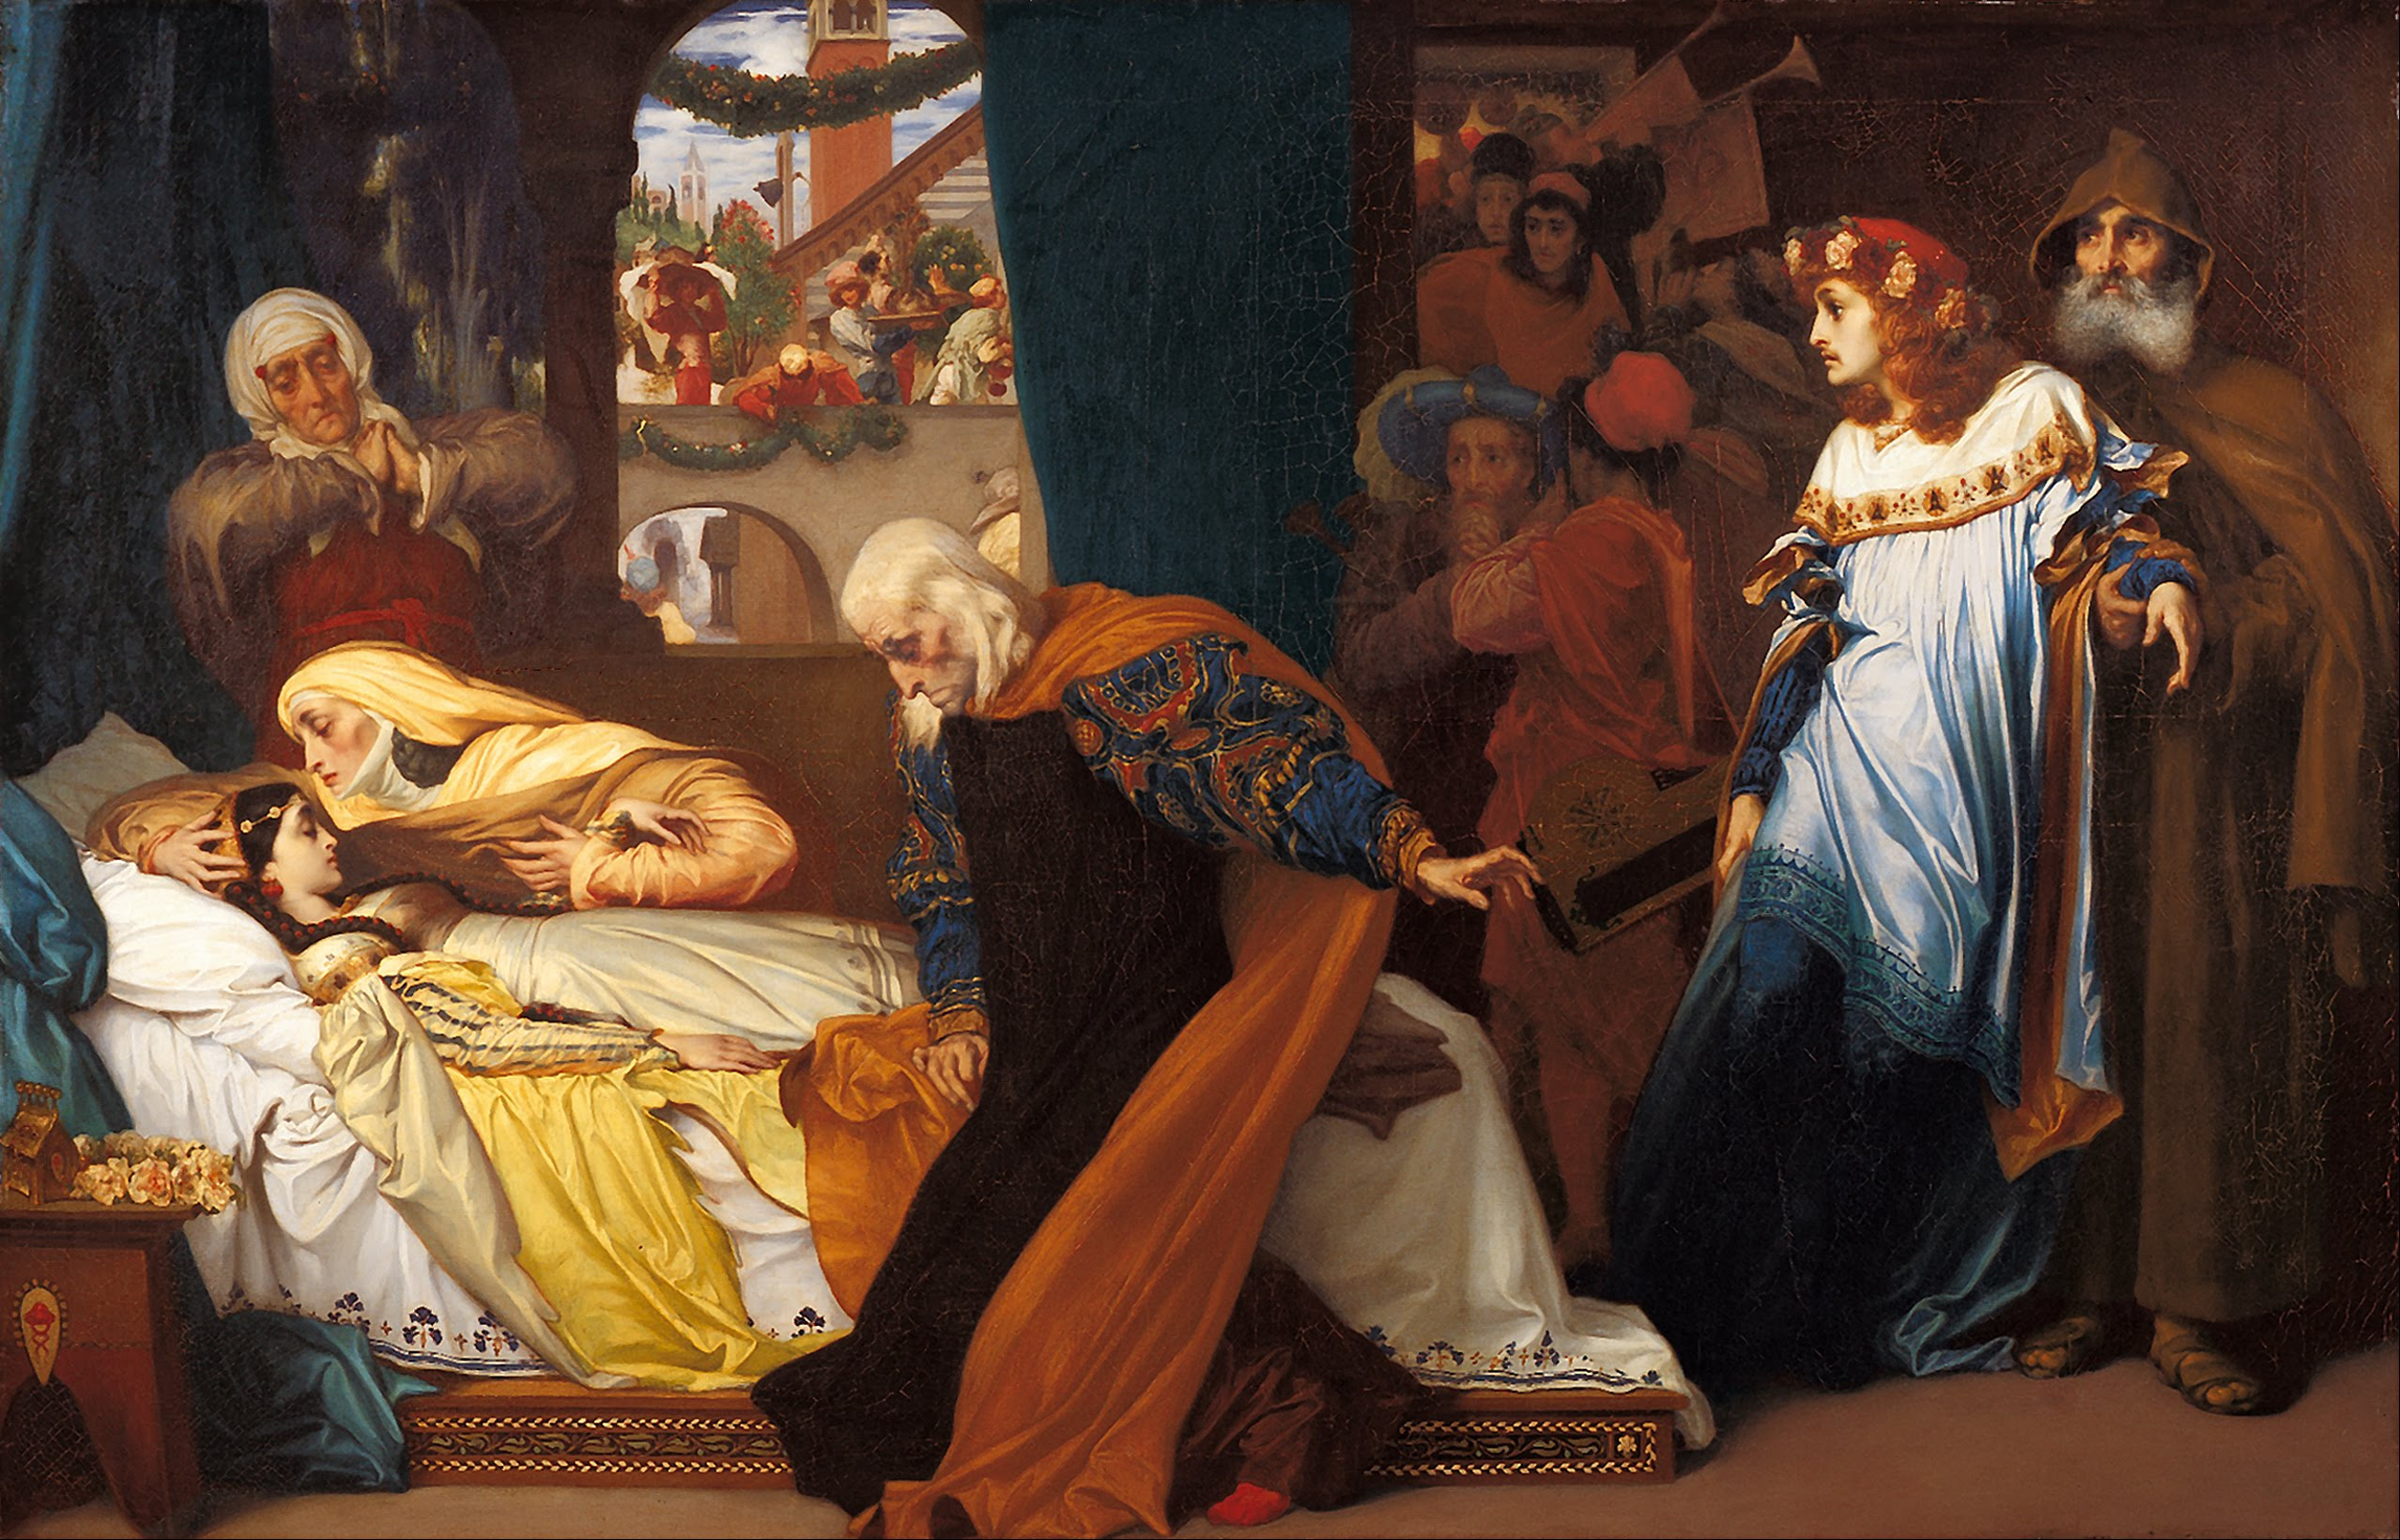 the death of romeo and juliet Juliet was not in love with paris, though, so she faked her death with a potion that allowed her to be in a sleep-state for 42 hours romeo got the news and rushed back to verona to mourn her death and, finally, kill himself.